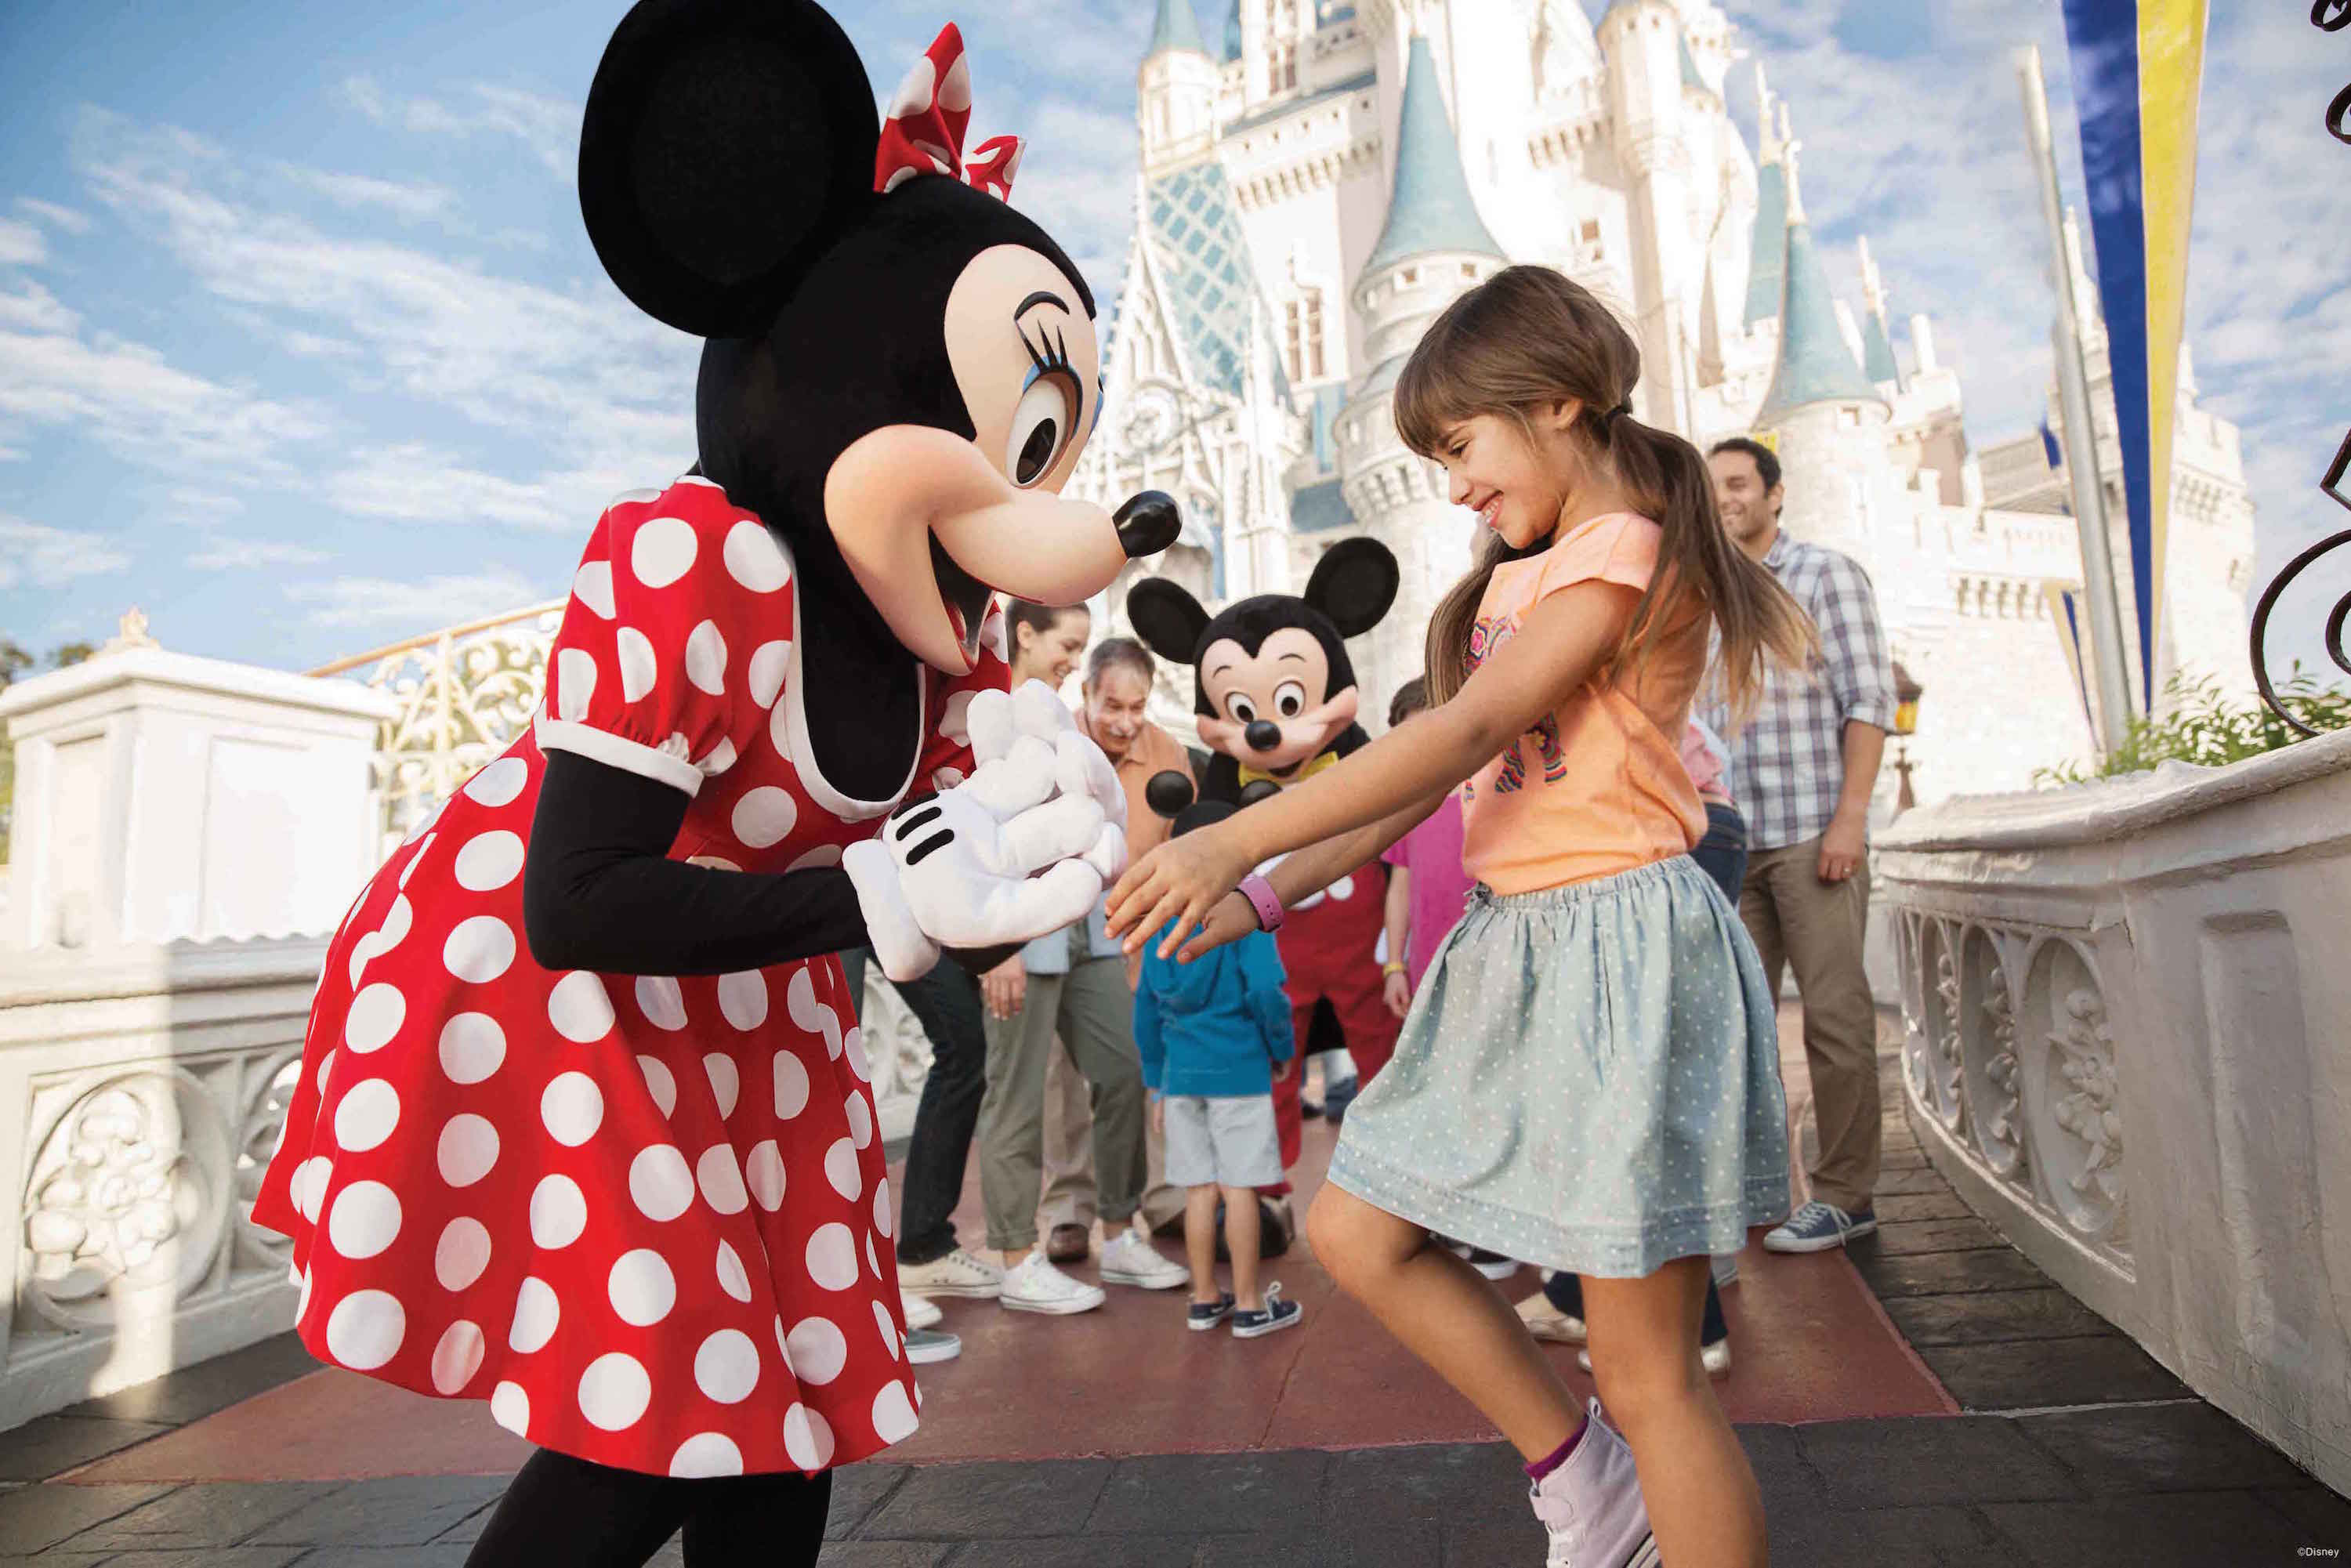 2017 WDW Resort Packages are in full swing!